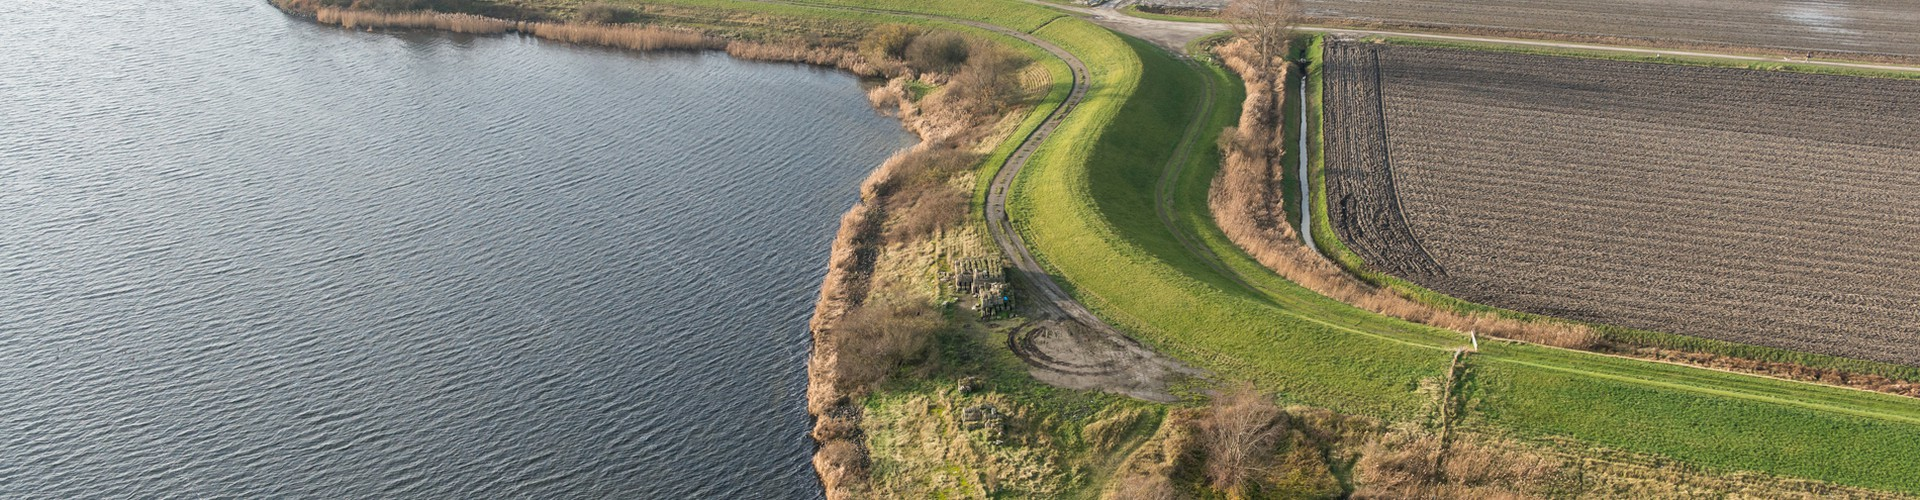 Aerial view of a seawall in the Netherlands protecting farmland that is below sea level. (Credit: Rijkswaterstaat, Ministry of Infrastructure and the Environment, the Netherlands)